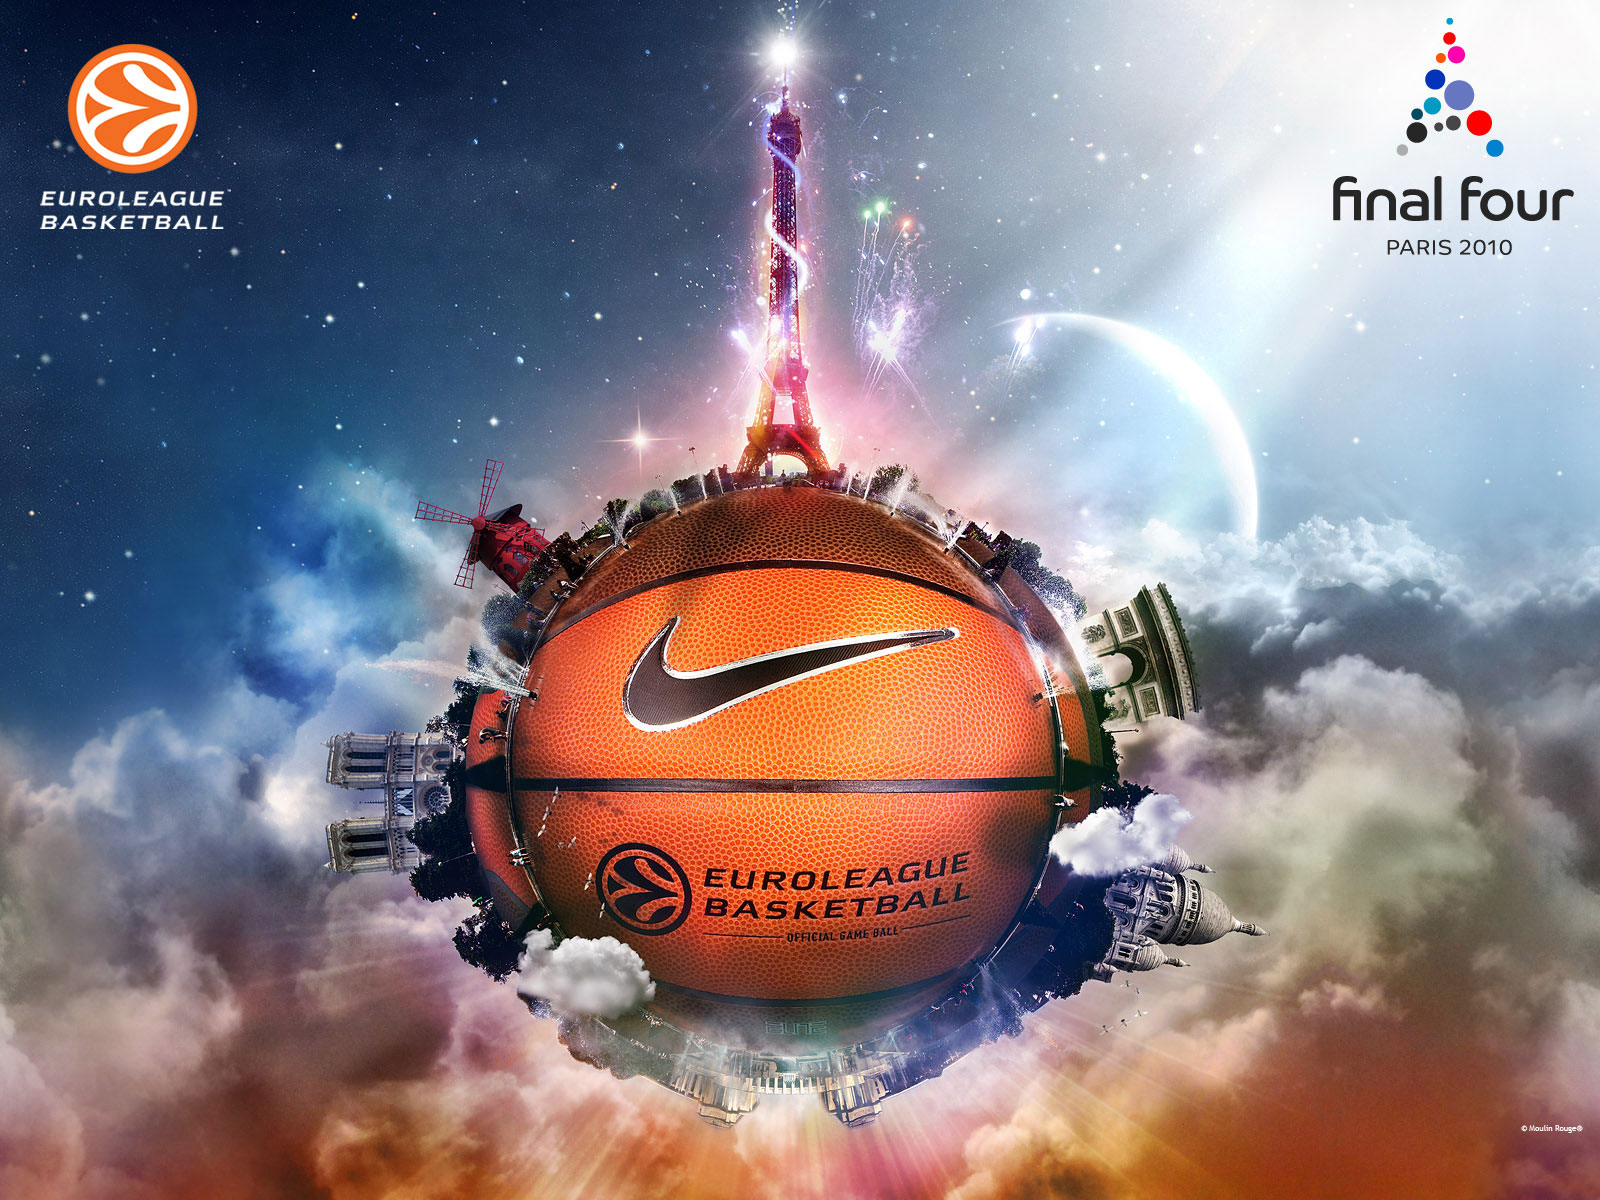 http://1.bp.blogspot.com/-lg7JcoV7uZo/TmSgO4ex98I/AAAAAAAAD8k/zqq8Iqk3MzE/s1600/Euroleague-2010-Final-Four-Wallpaper.jpg